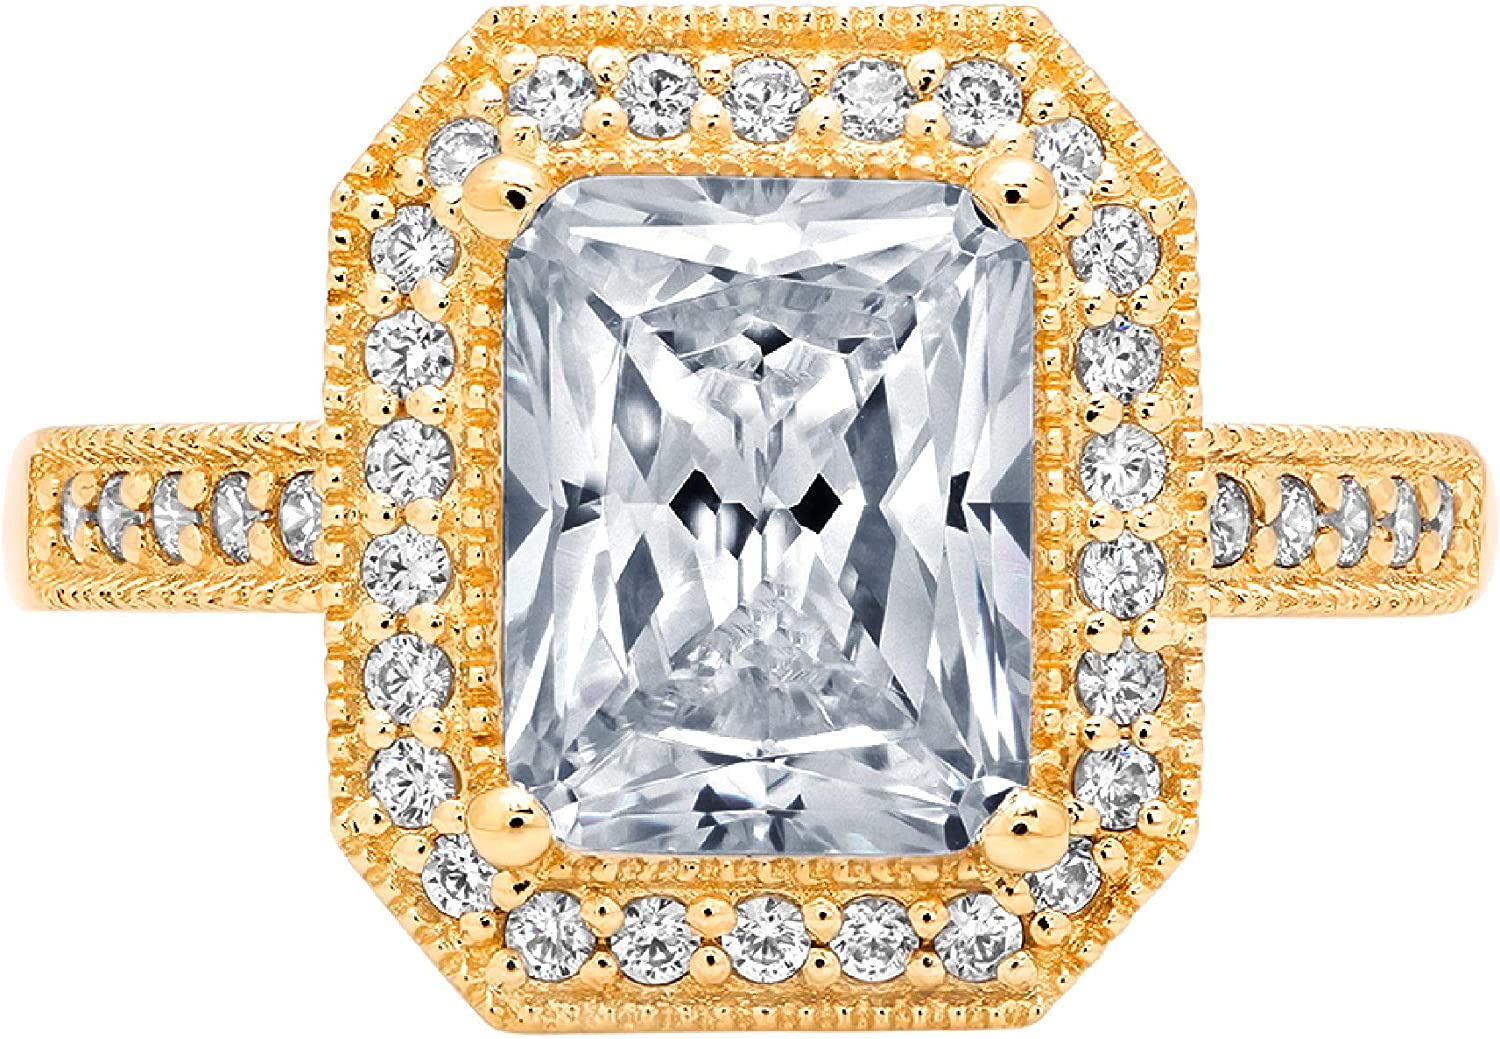 2.84ct Brilliant Emerald Cut Solitaire with Accent Halo Flawless Designer Genuine Natural Light Blue Aquamarine Gemstone Ideal VVS1 Engagement Promise Anniversary Bridal Wedding Ring 14k Yellow Gold